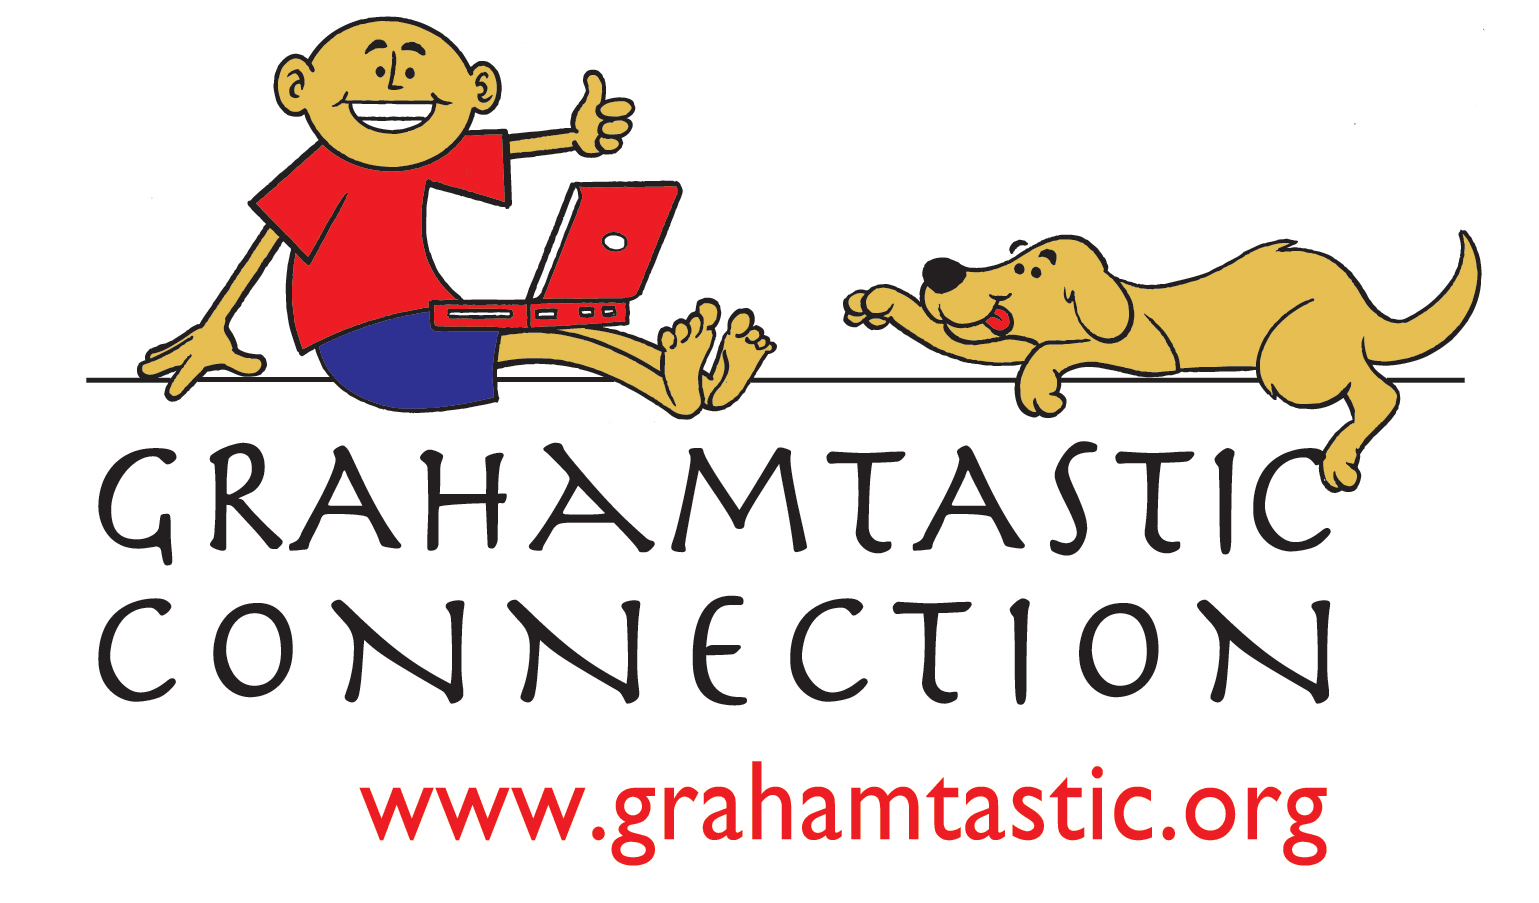 Grahamtastic Connection